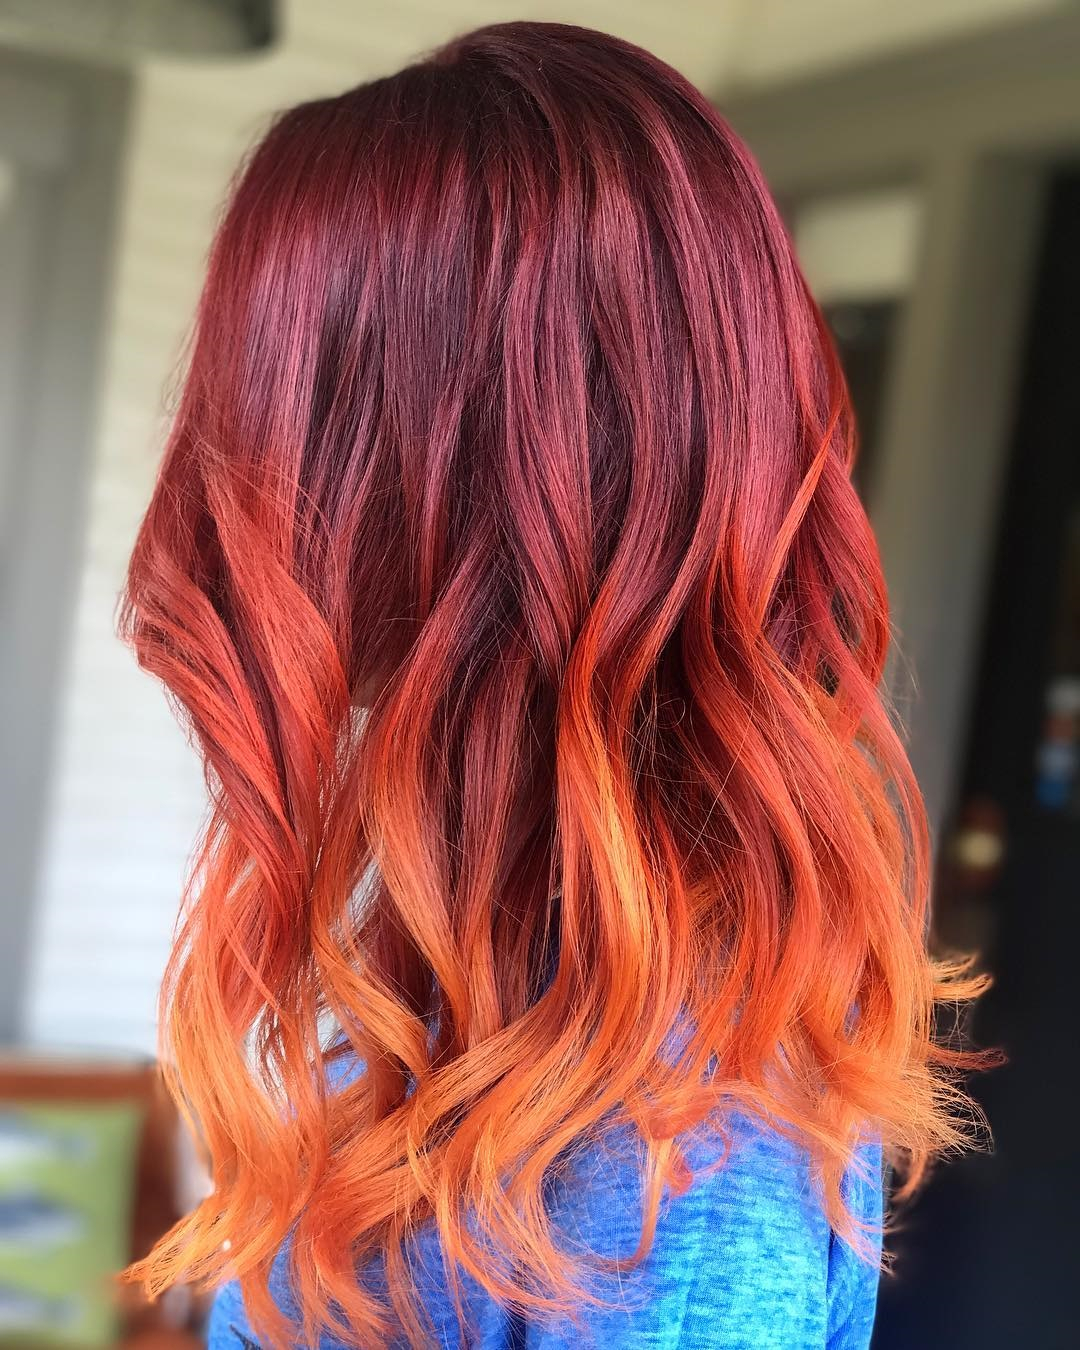 10 Cute Fun Red Hair Color Ideas 20 radical styling ideas for your red ombre hair 2020